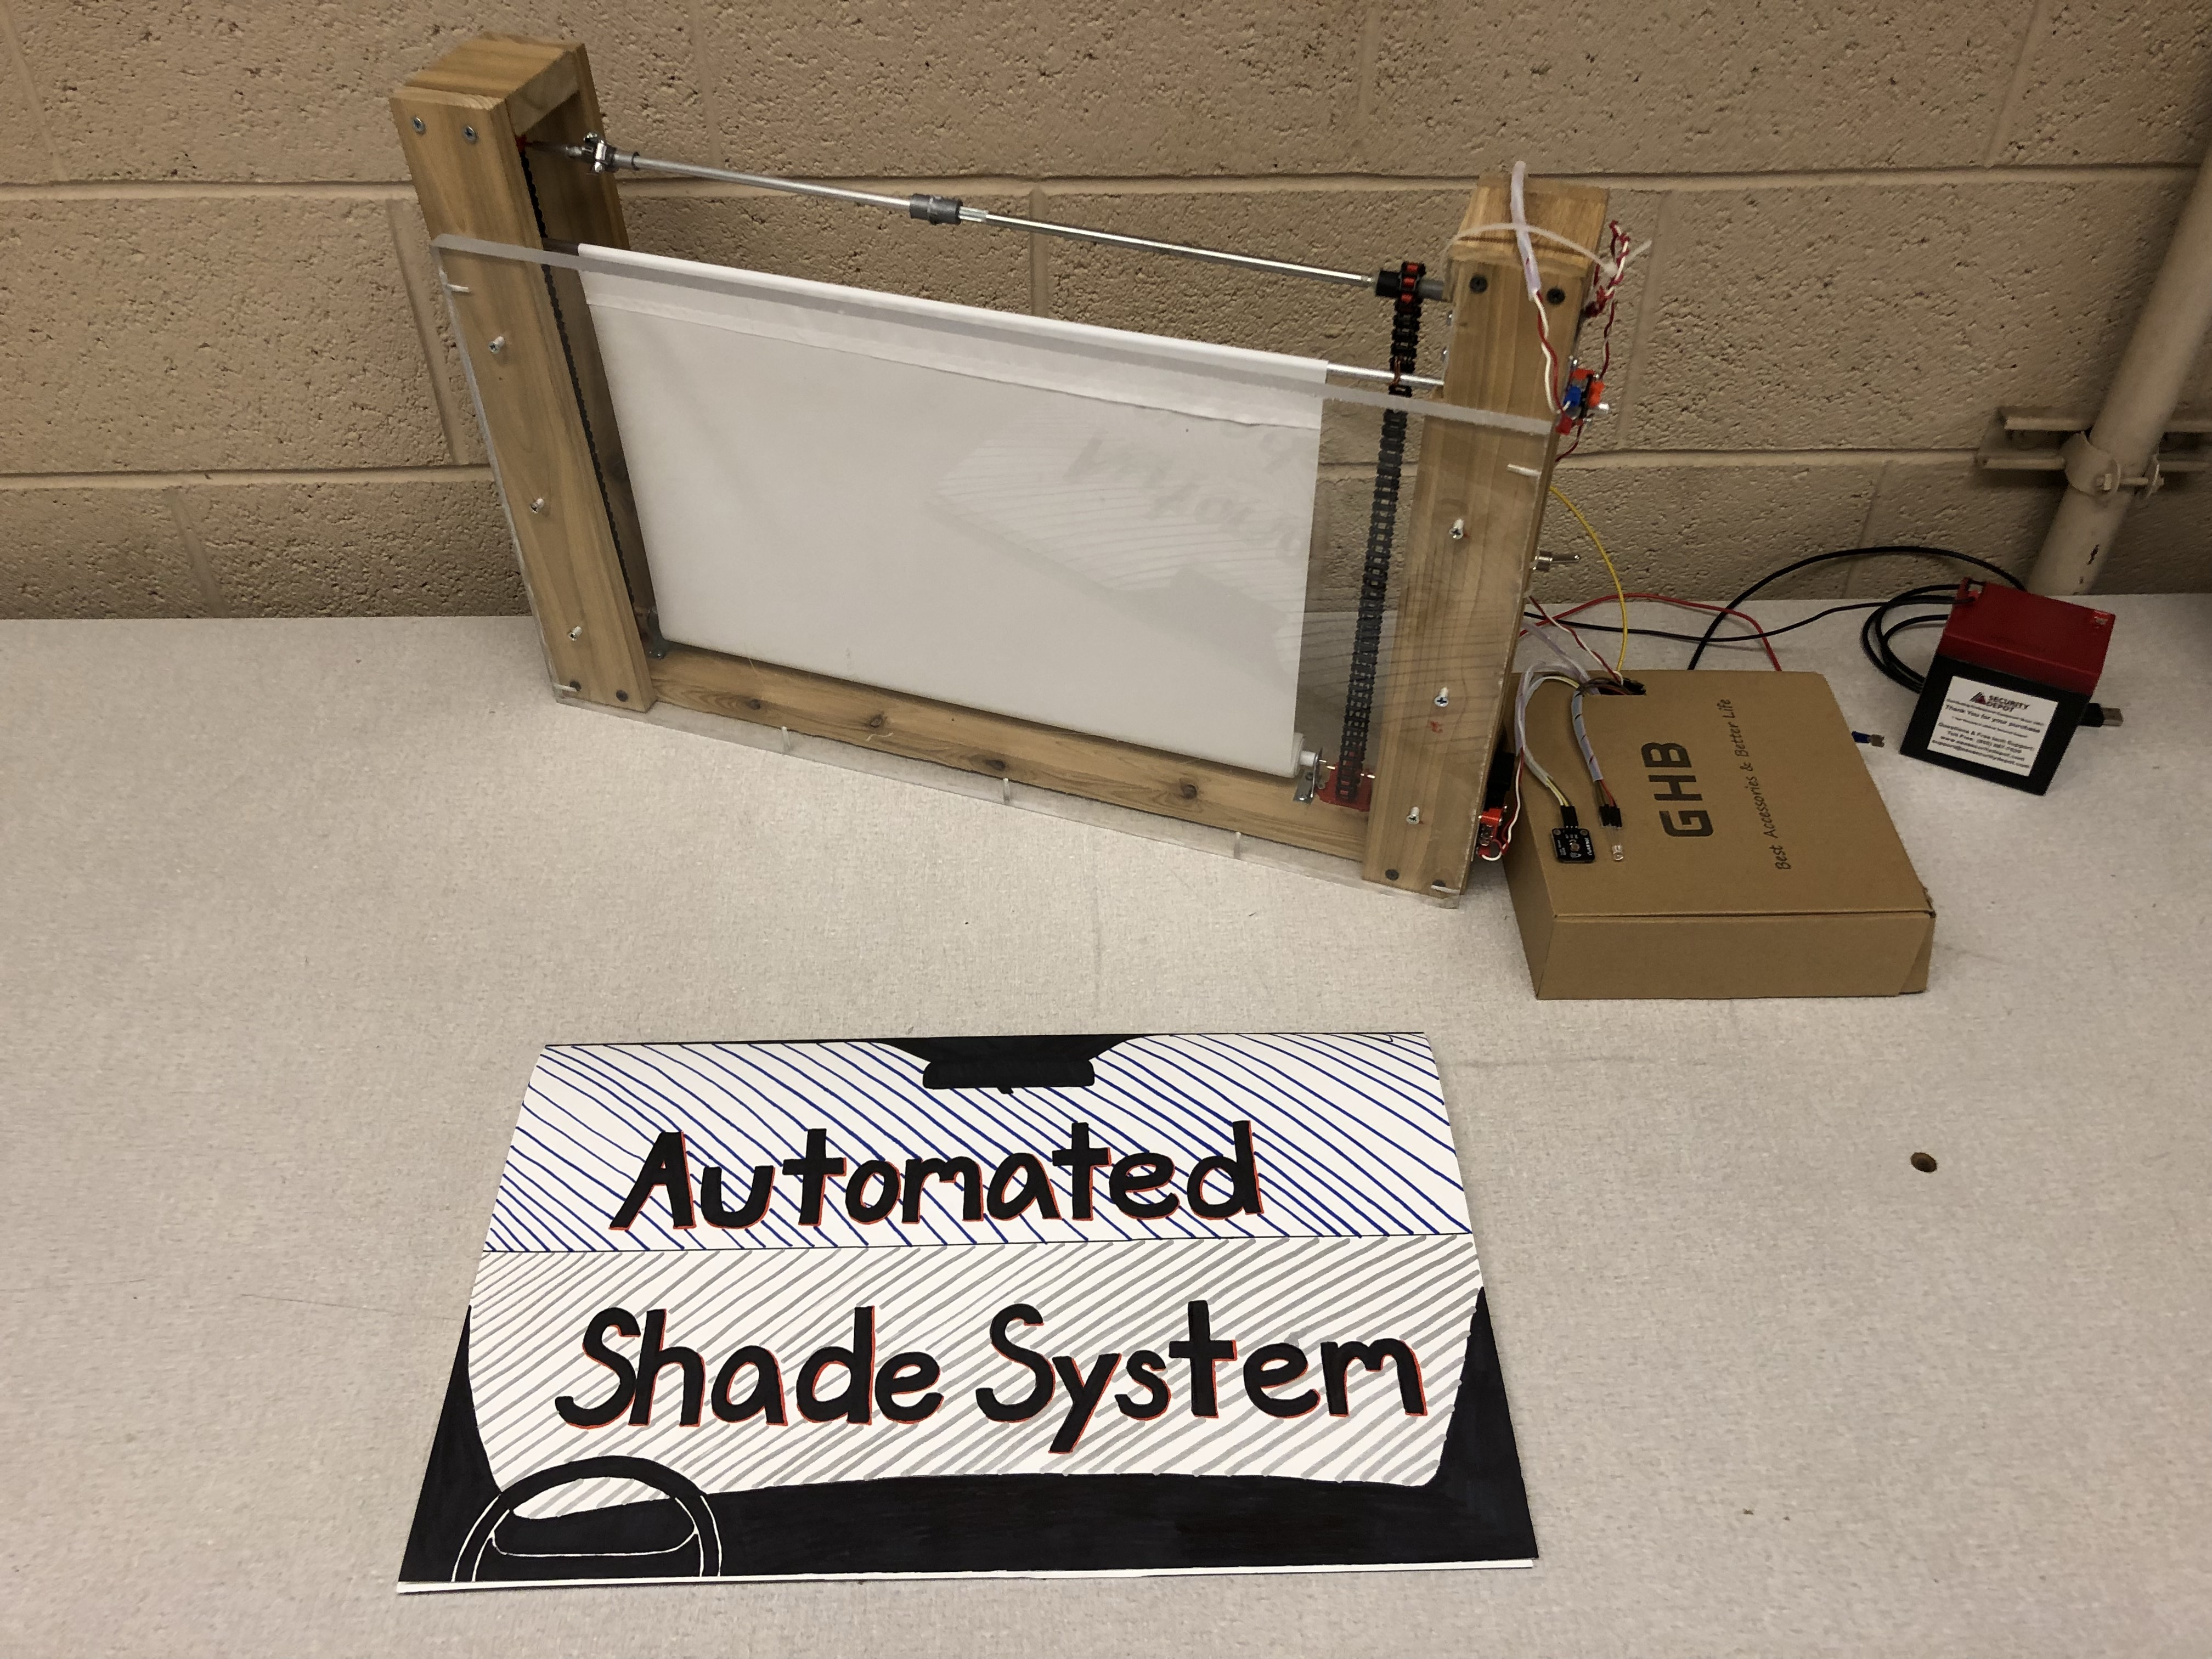 Picture of Automated Sunshade System